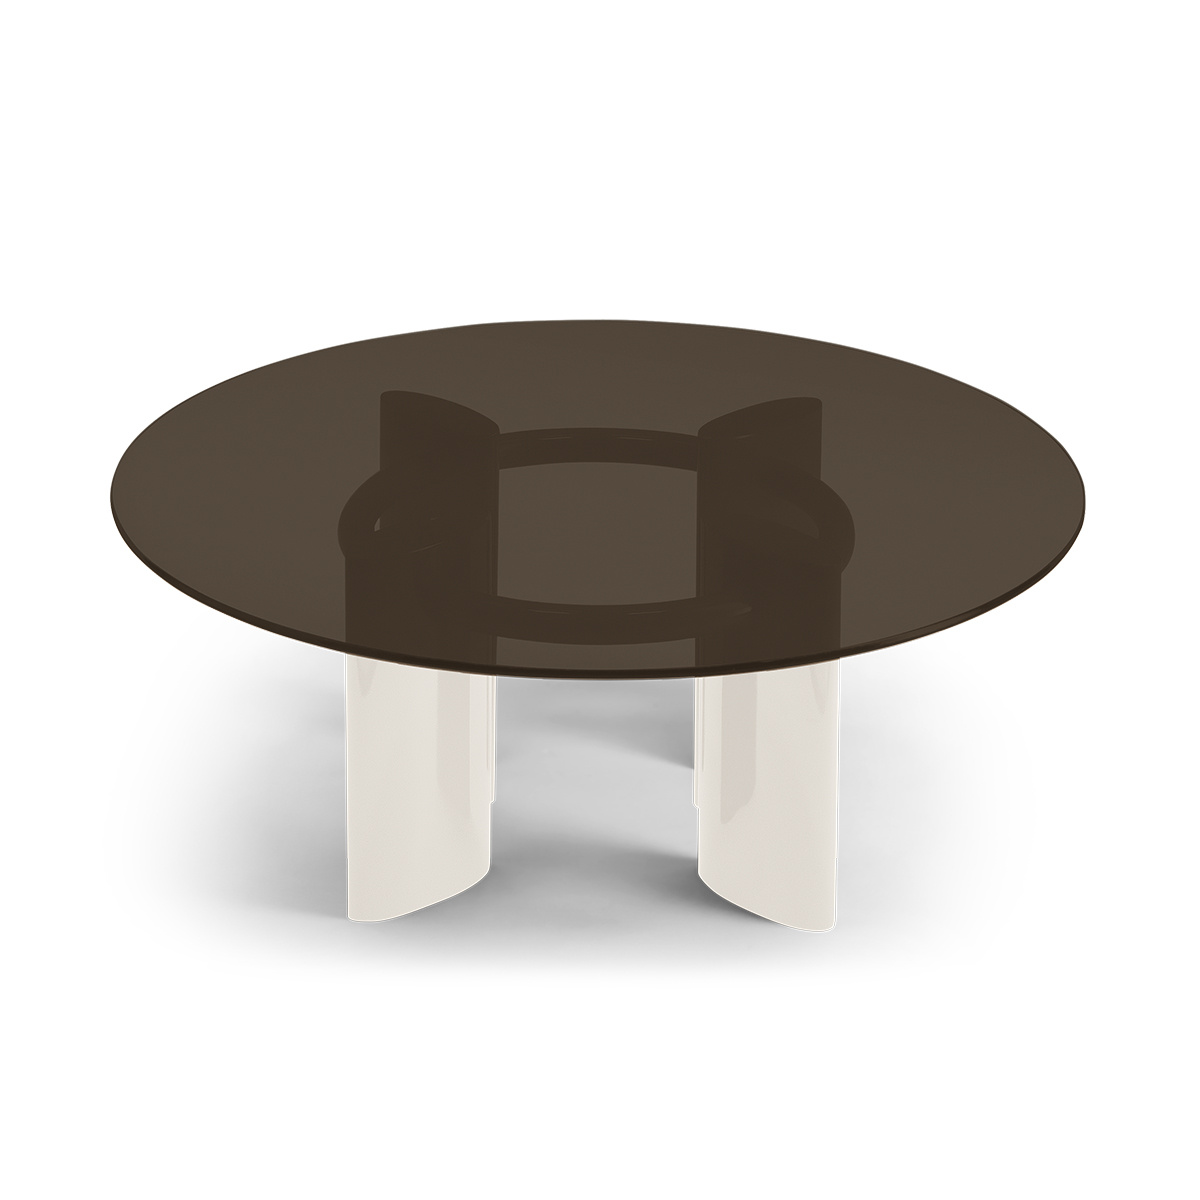 Carlotta coffee table, smoked glass top and cream white lacquered legs